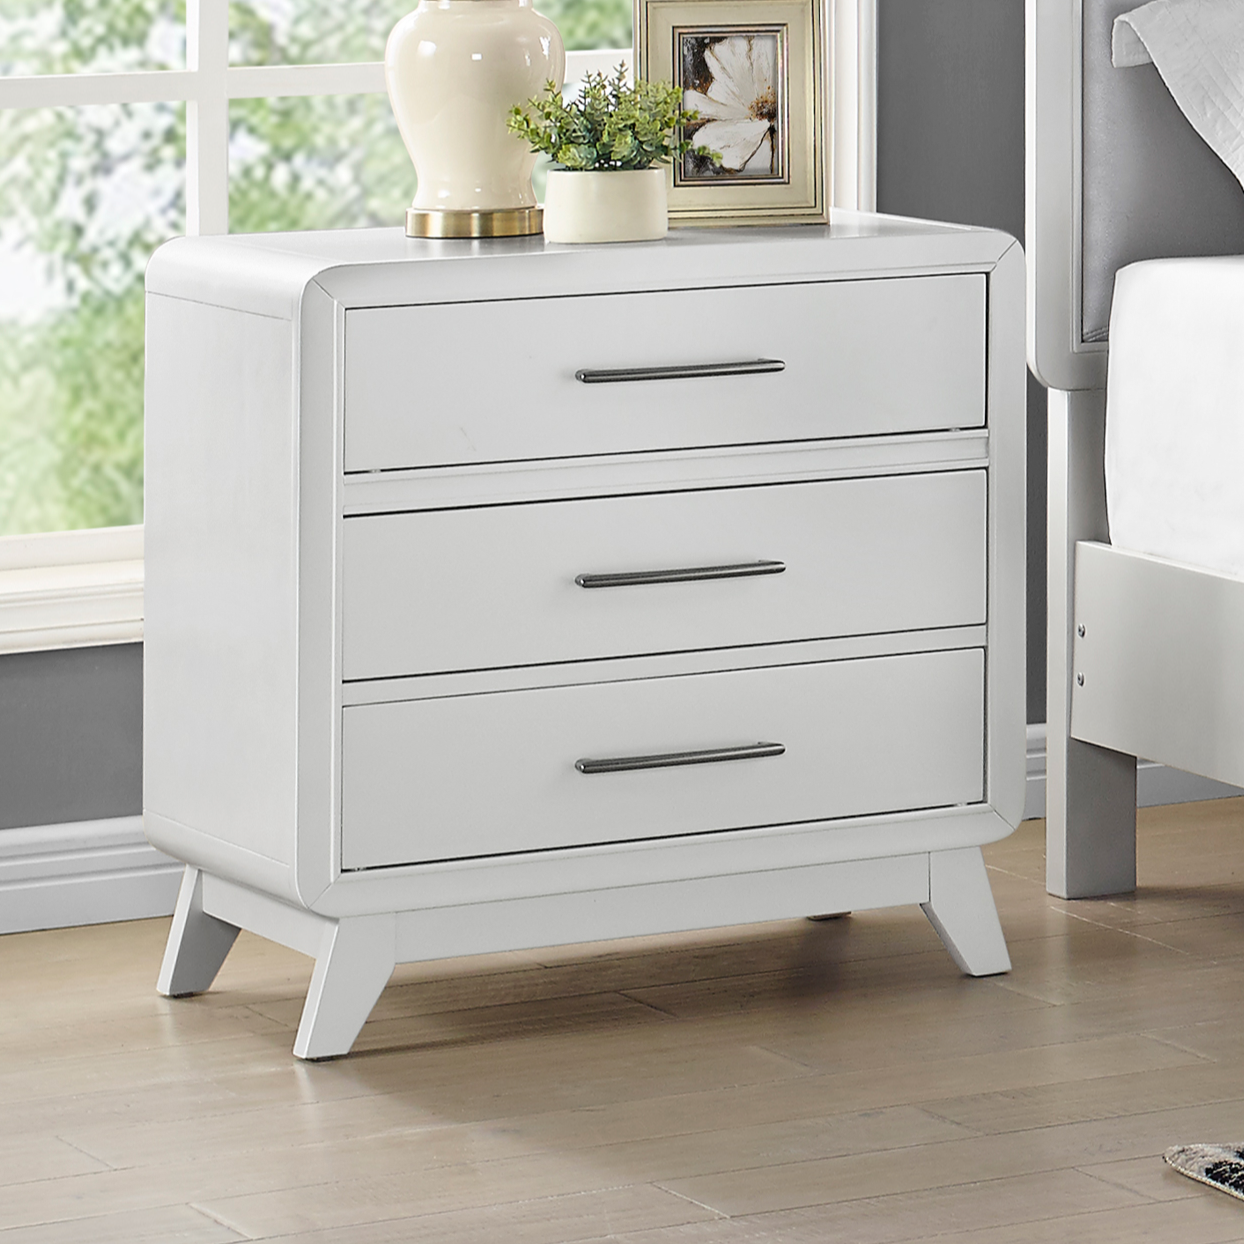 Skylar Nightstand by New Classic at Beds N Stuff